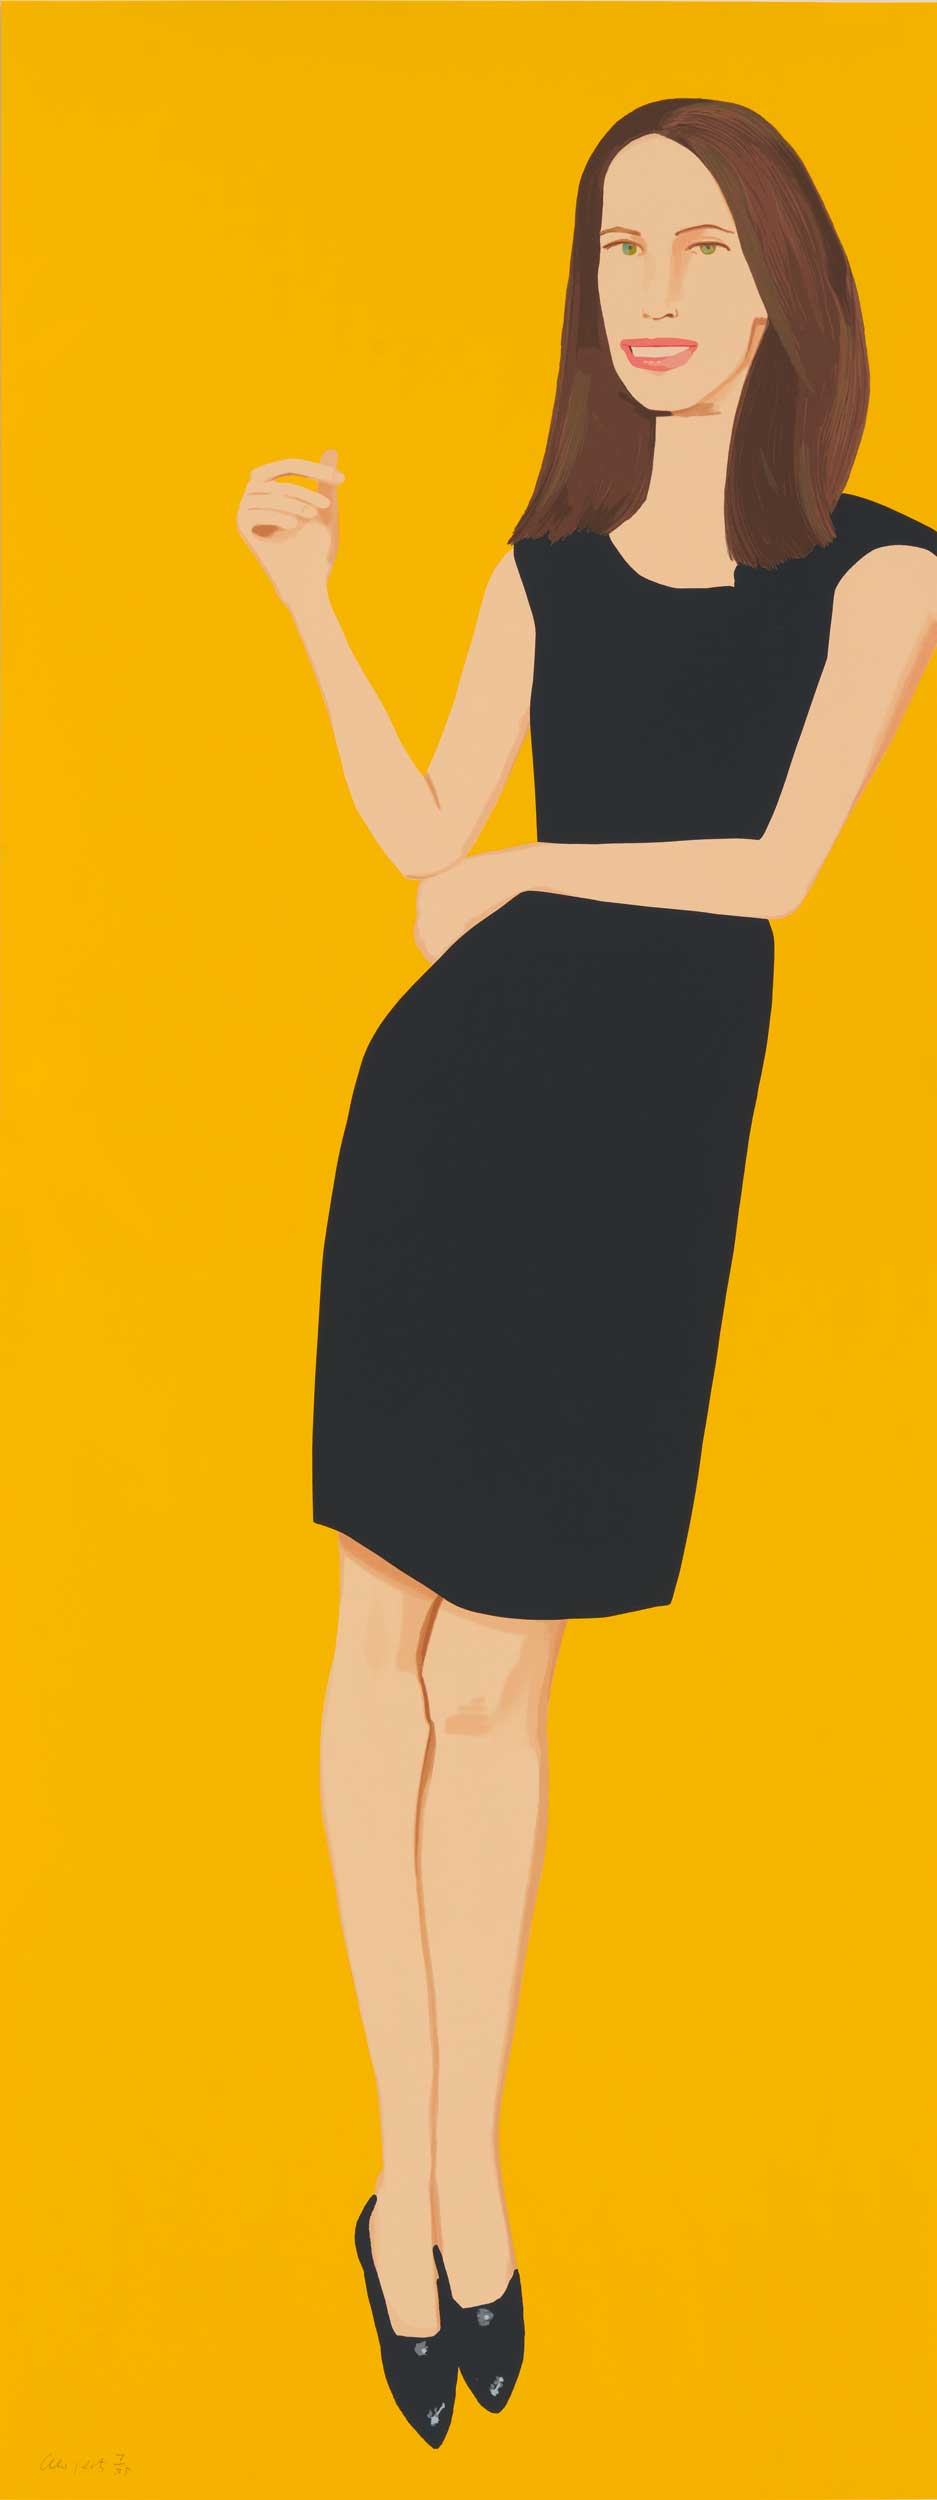 Brightly colored graphic painting of a woman in a black dress